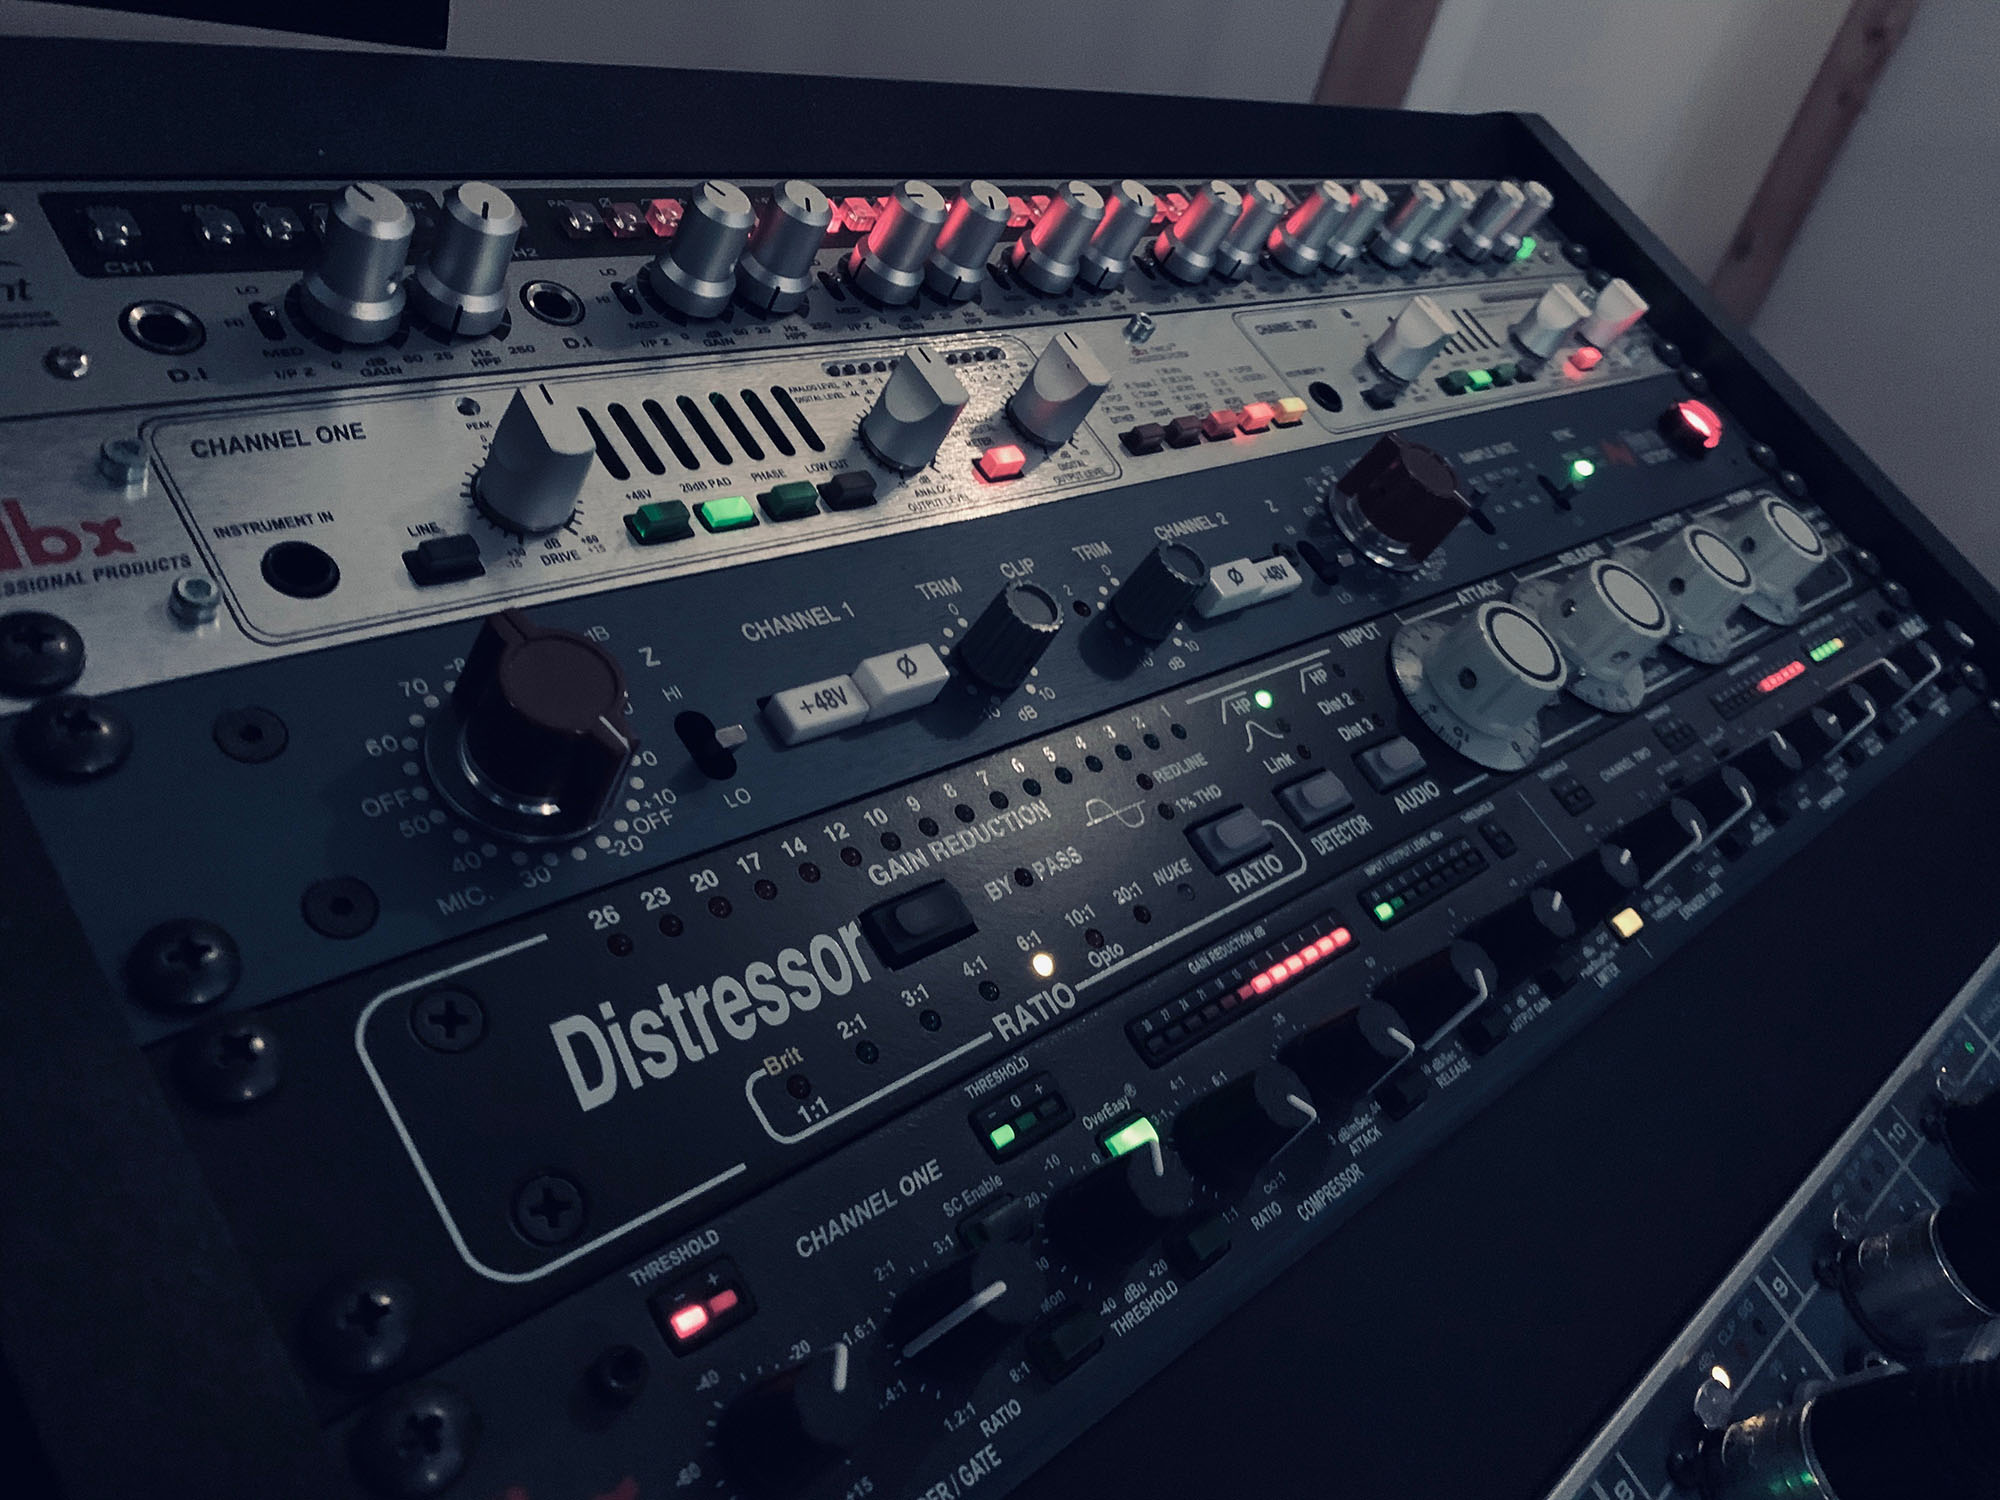 Distressor, Neve 1073, Audient ASP880 and more at Toneshed Recording Studio